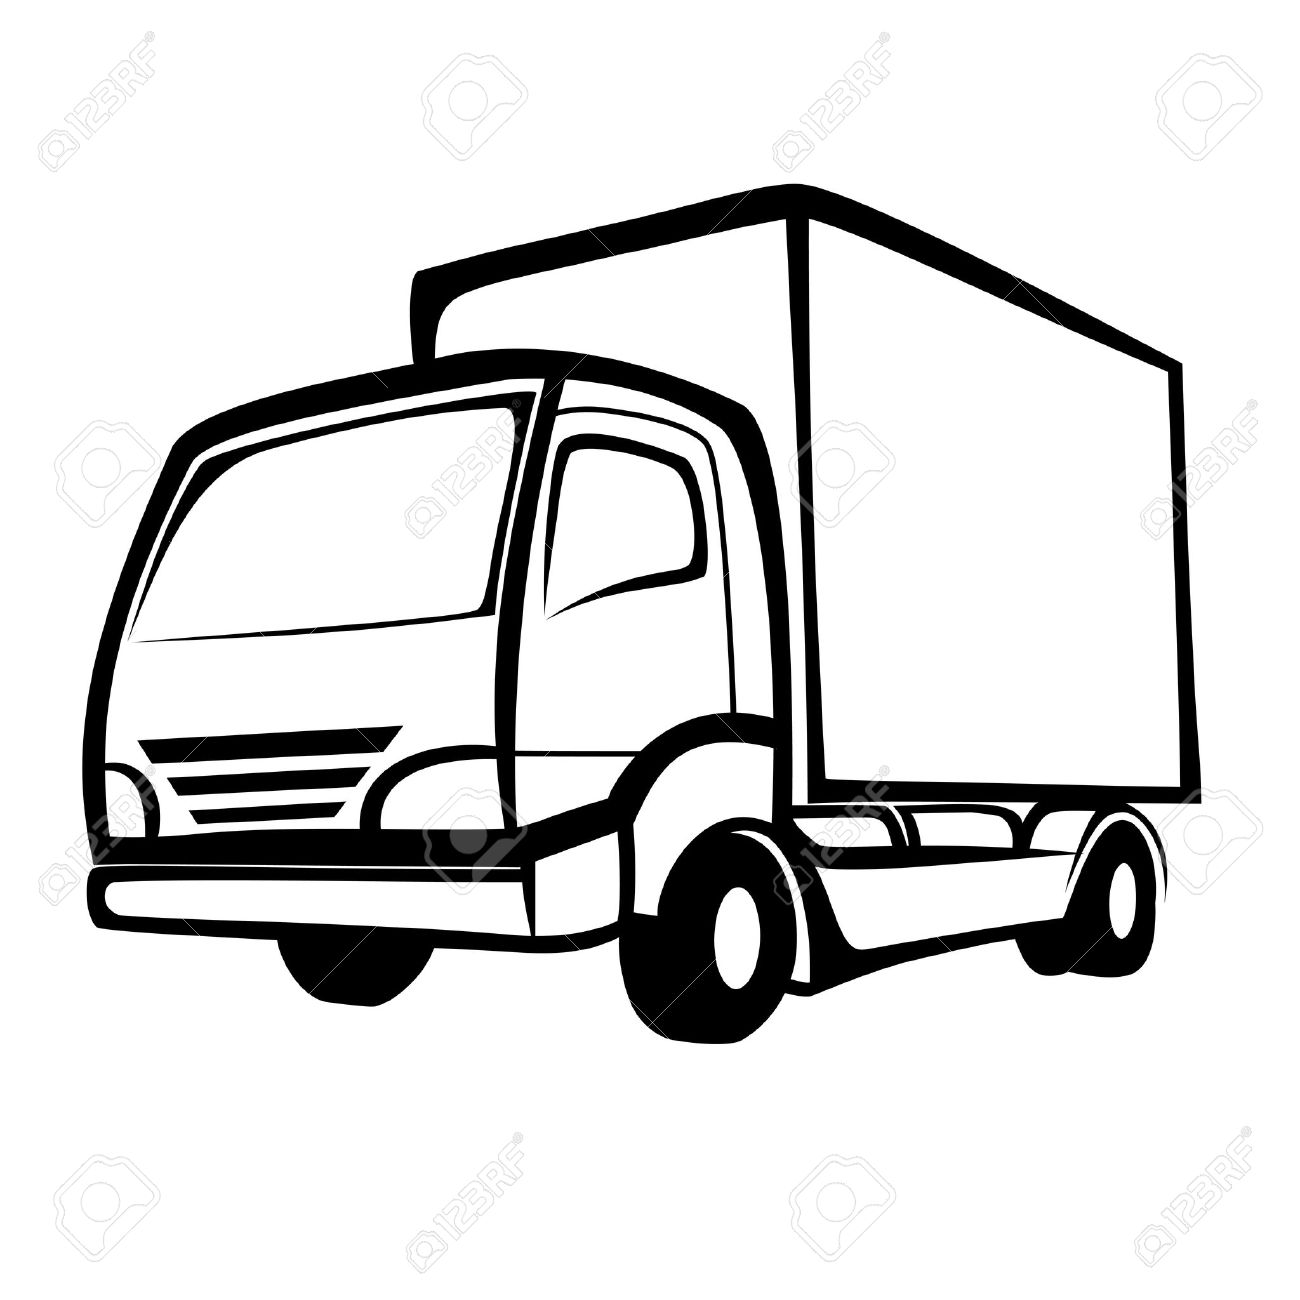 471 Delivery Truck free clipart.